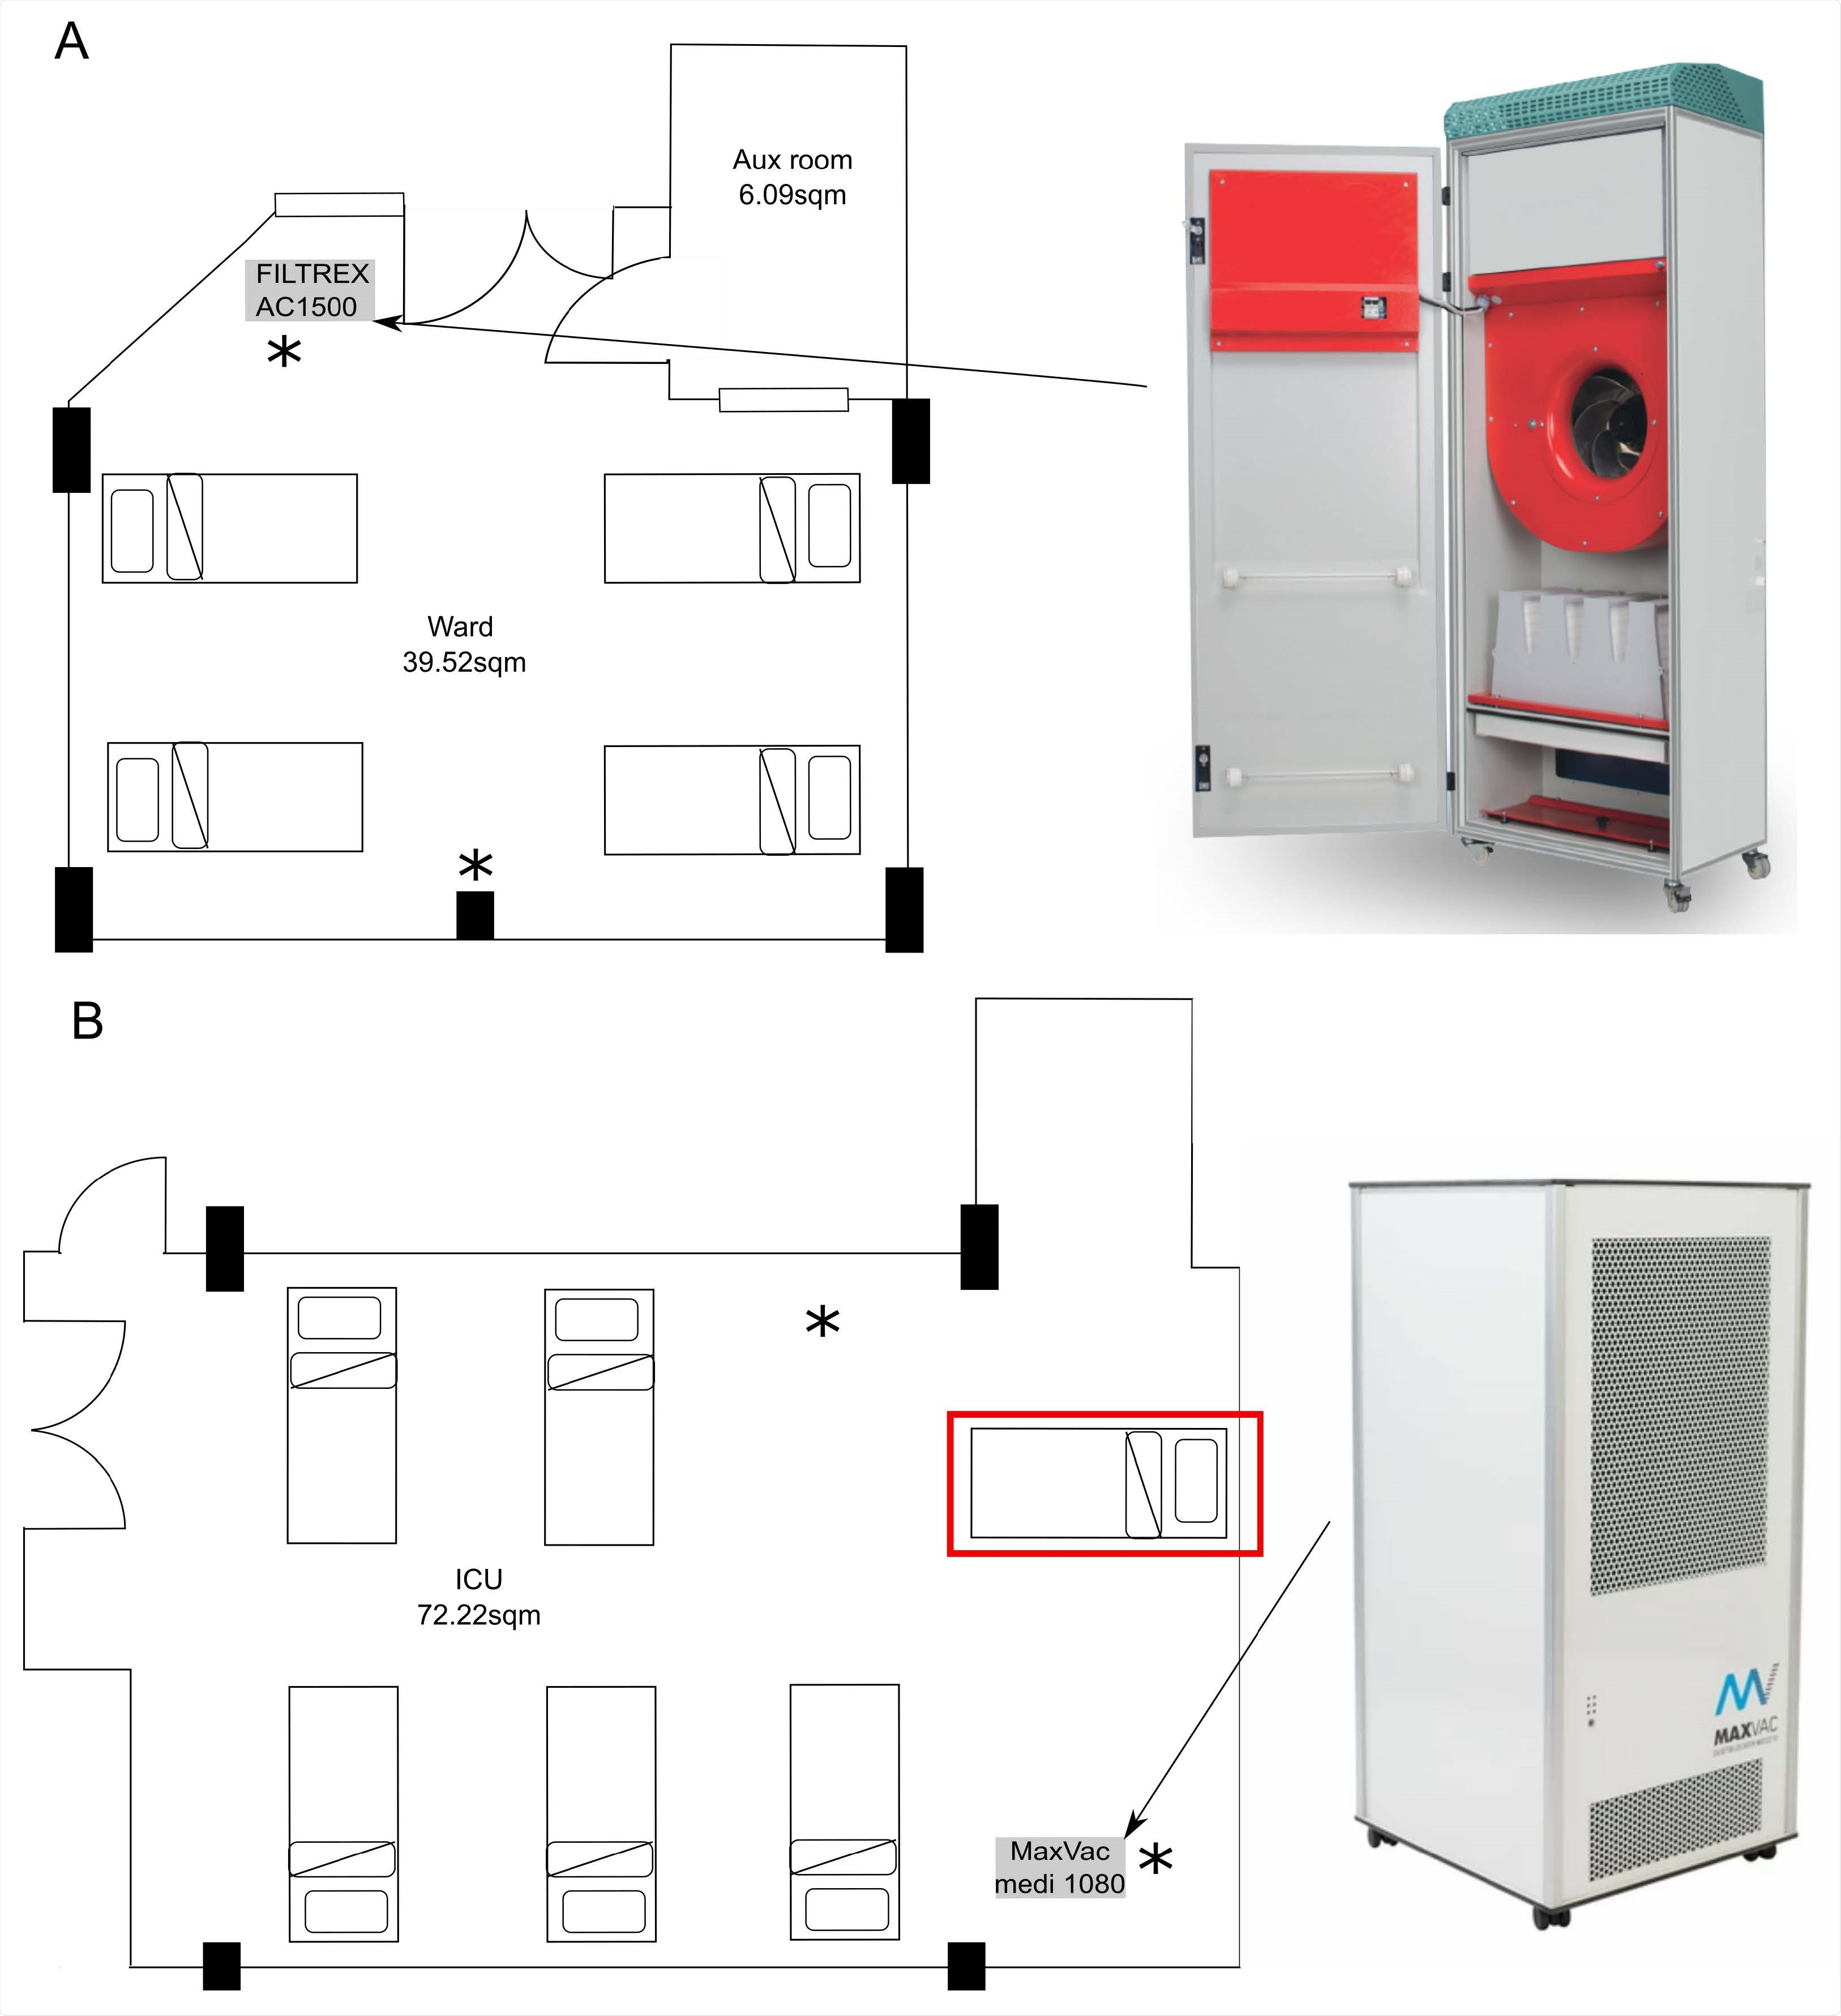 Location of the air filters and room layout. A) Layout of the room on the 'surge' ward with four beds. B) Layout on the 'surge' ICU with six beds including the addition of the additional bed to increase occupancy (labelled with rad box). Locations of the NIOSH air samplers indicated by *. The air filters were installed in the marked locations and set to operate at 1000 m3/hour. The rooms volumes are approximately 107 m3 and 195m3 respectively. Fresh air was not supplied or extracted in these areas.